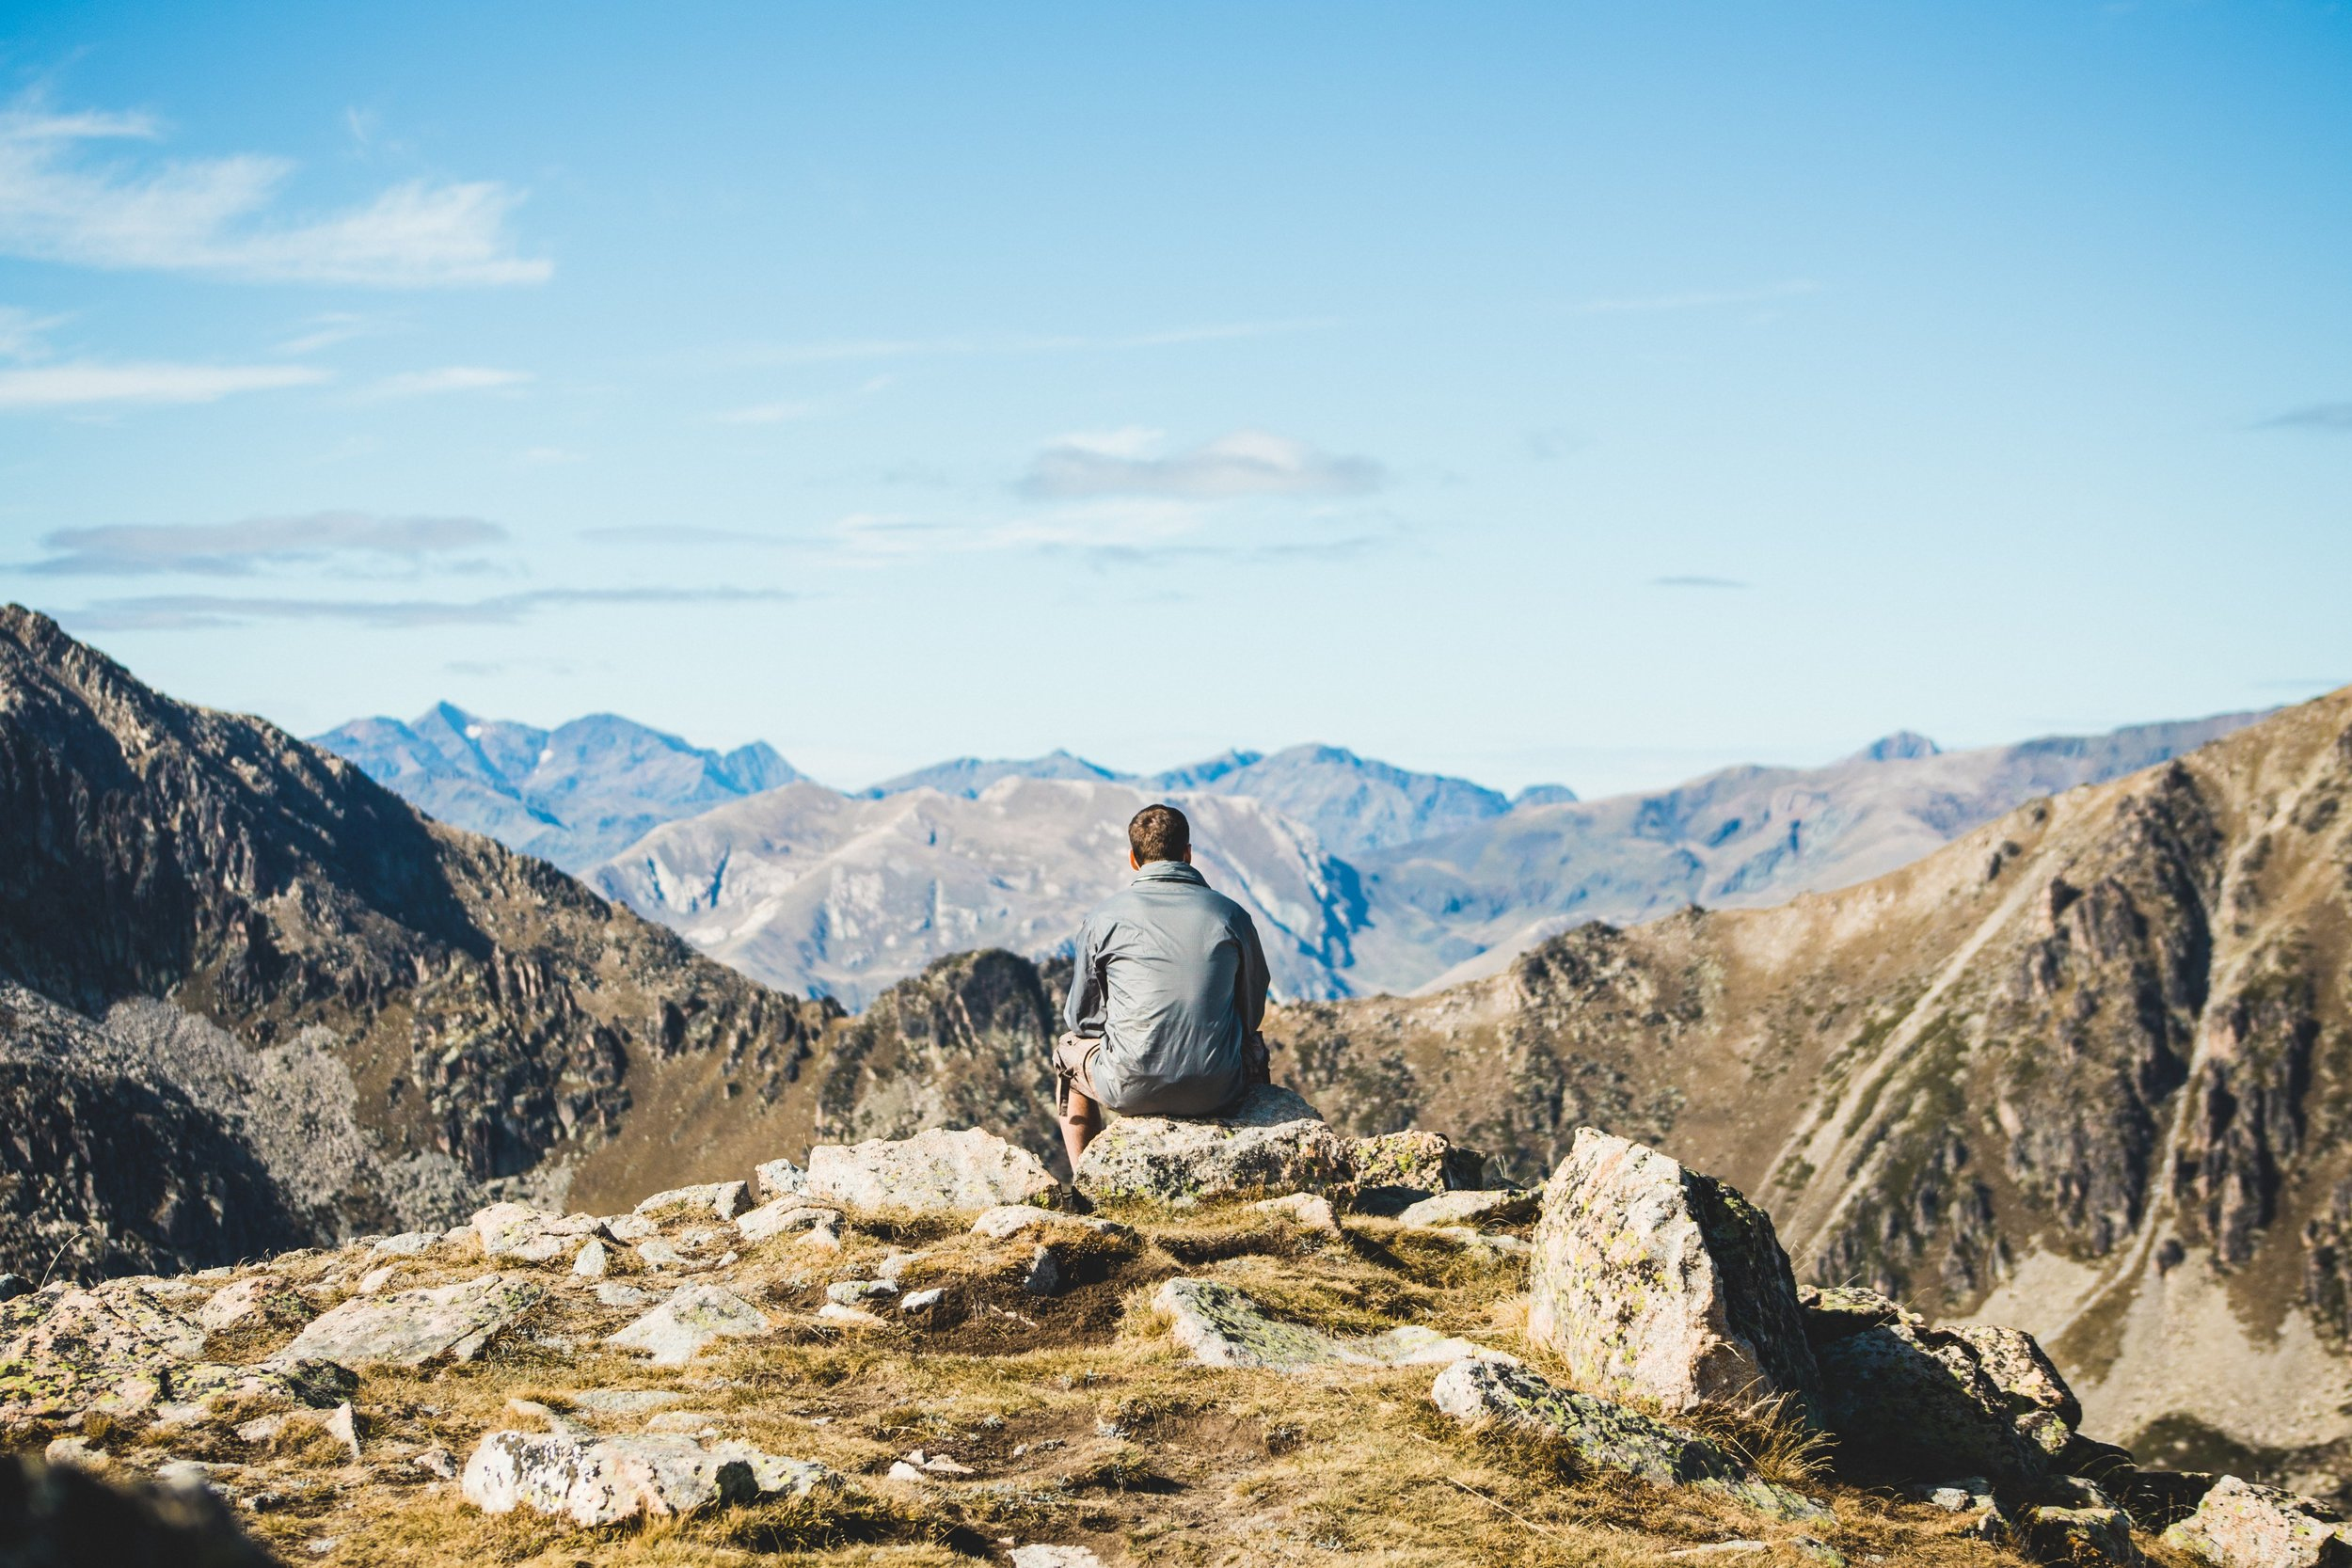 Man sitting on rock looking at mountain scenery.